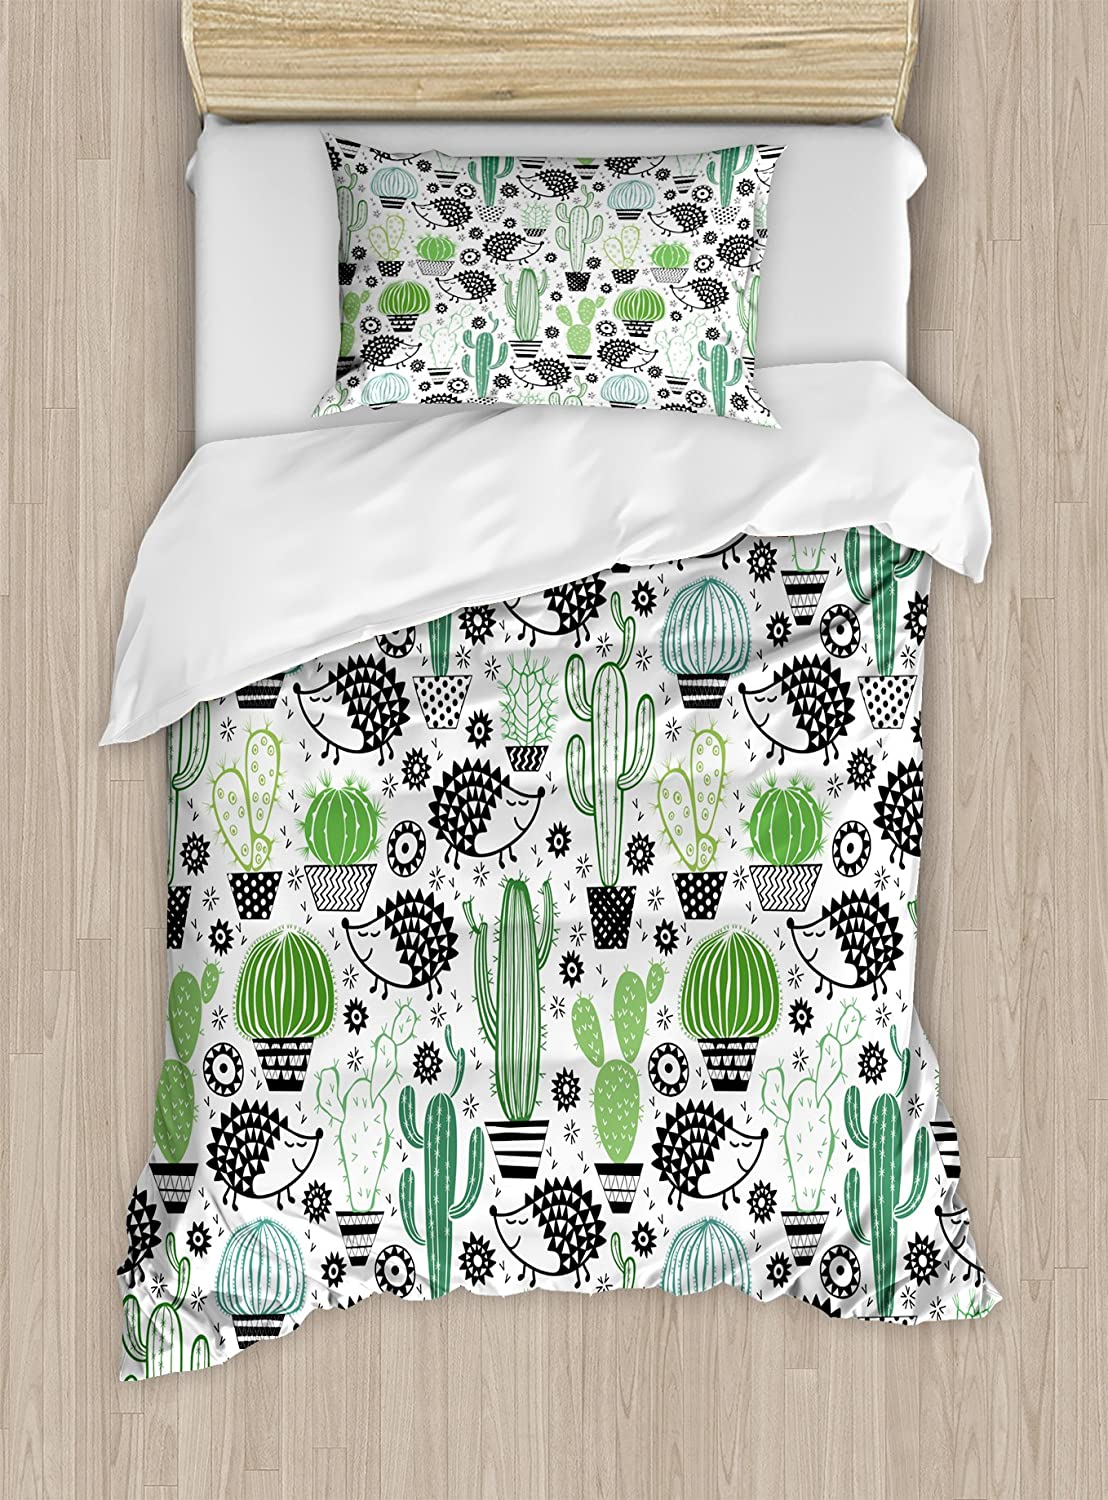 Decorative 3 Piece Bedding Set with 2 Pillow Shams Ambesonne Turtle Duvet Cover Set King Size Baby Turtle Swimming in Abstract Waters Serene Nature Picture Coffee Seafoam